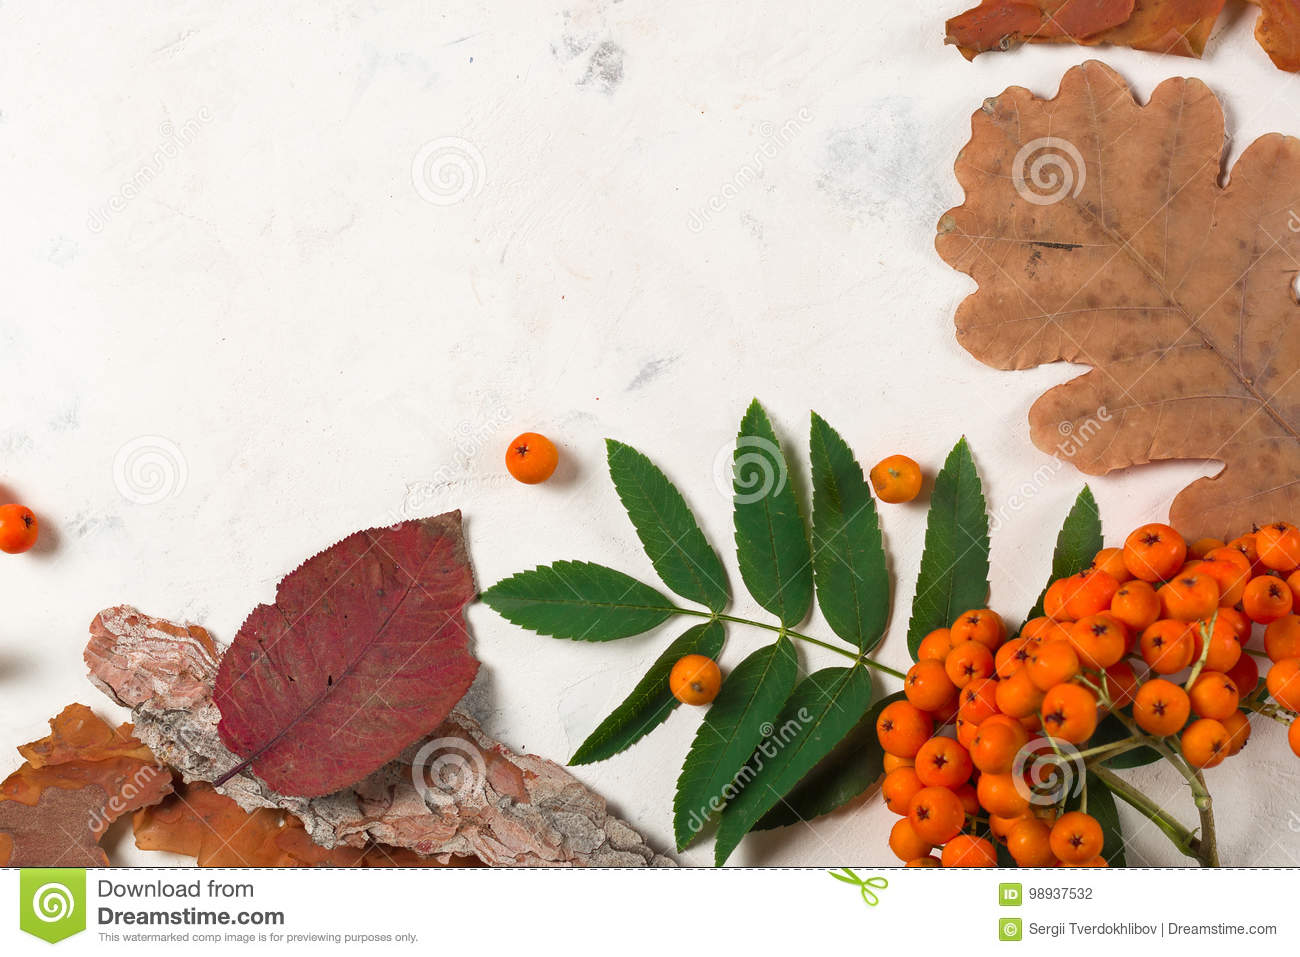 A bunch of ripe orange mountain ash with green leaves. Autumn dry leaves. Black berries. White stone or plaster